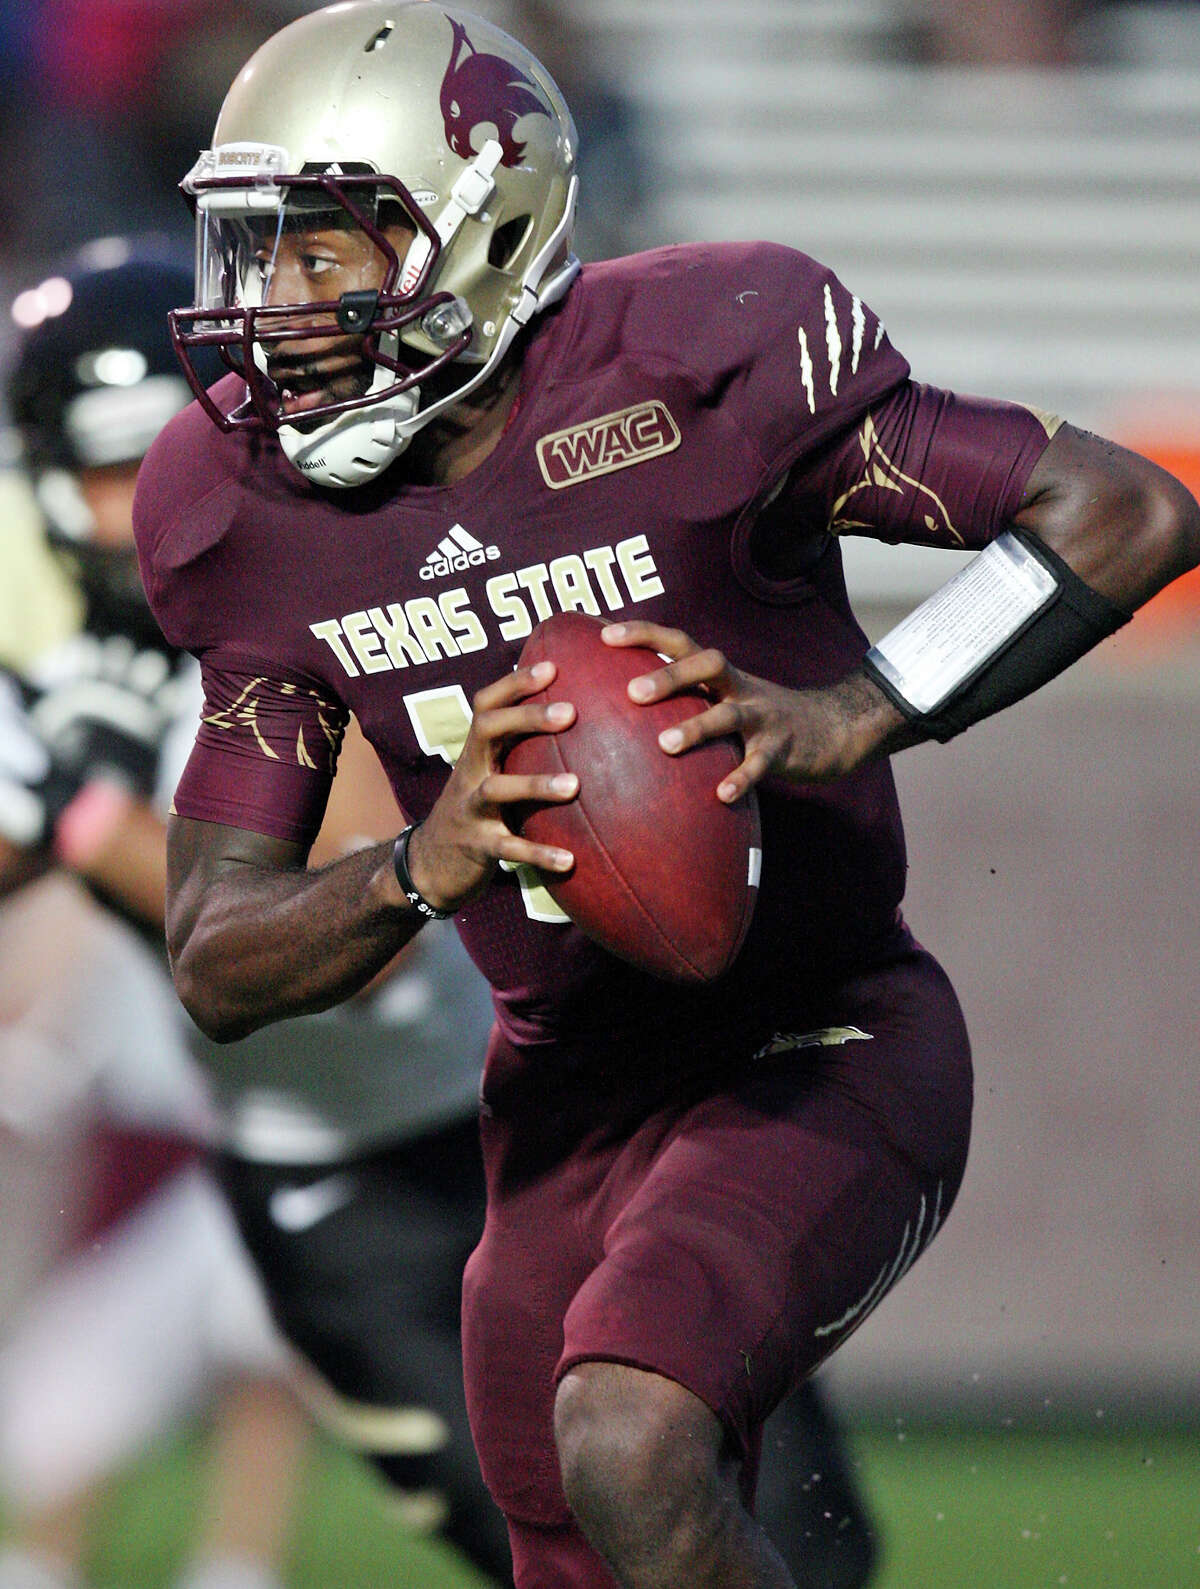 Texas State Bobcats' Shaun Rutherford looks for running room against the Idaho Vandals during first half action Saturday Oct. 13, 2012 at Bobcat Stadium in San Marcos, Tx.